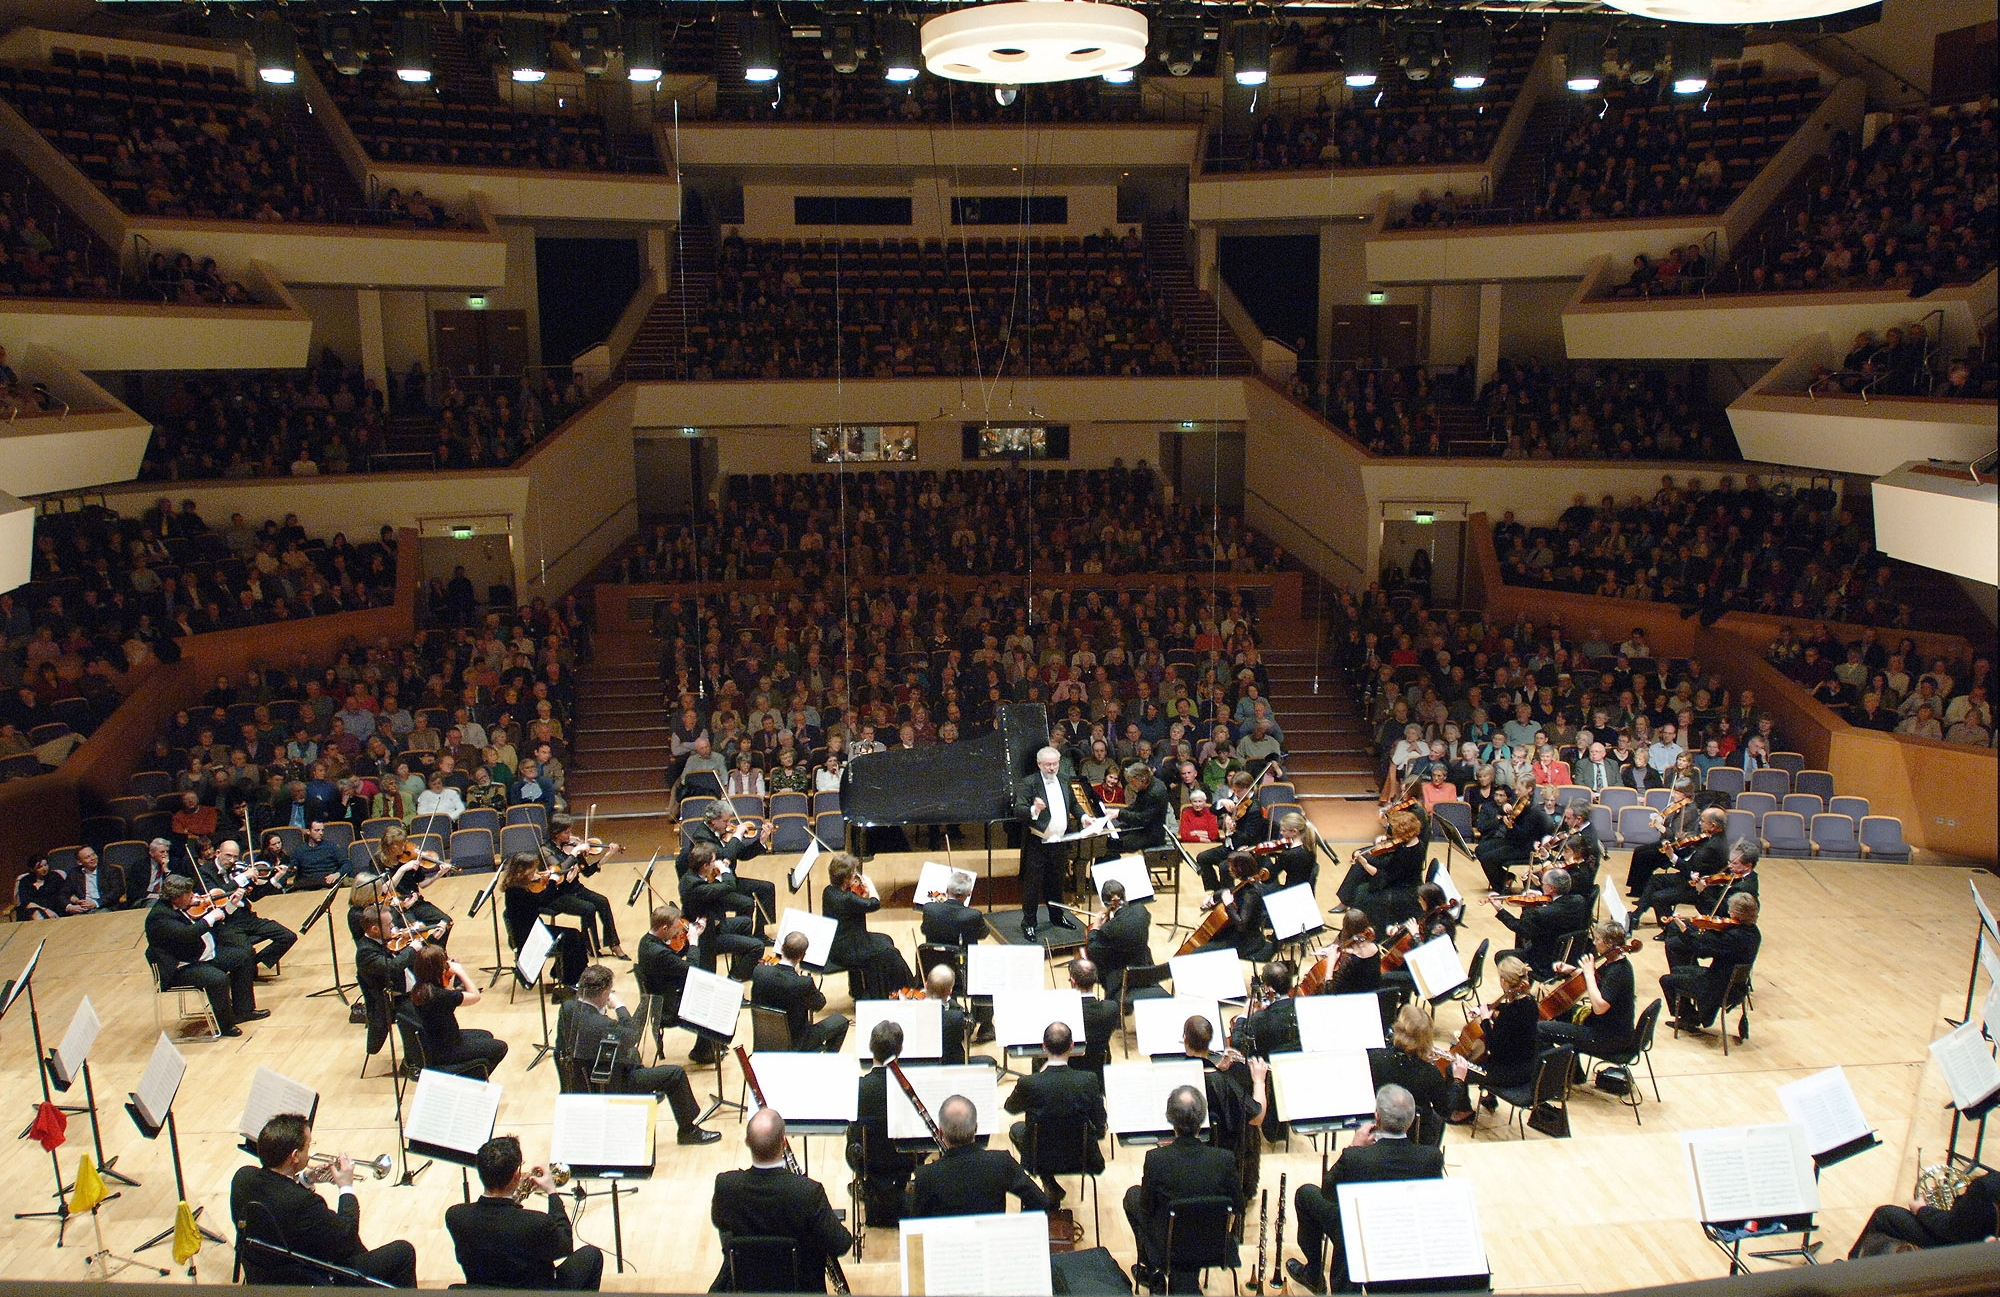 The Ulster Orchestra, under the masterly direction of its Dutch principal guest conductor Jac van Steen, featured the music of American composers with sharply contrasting styles in this packed concert organised as part of the Belfast International Festival.